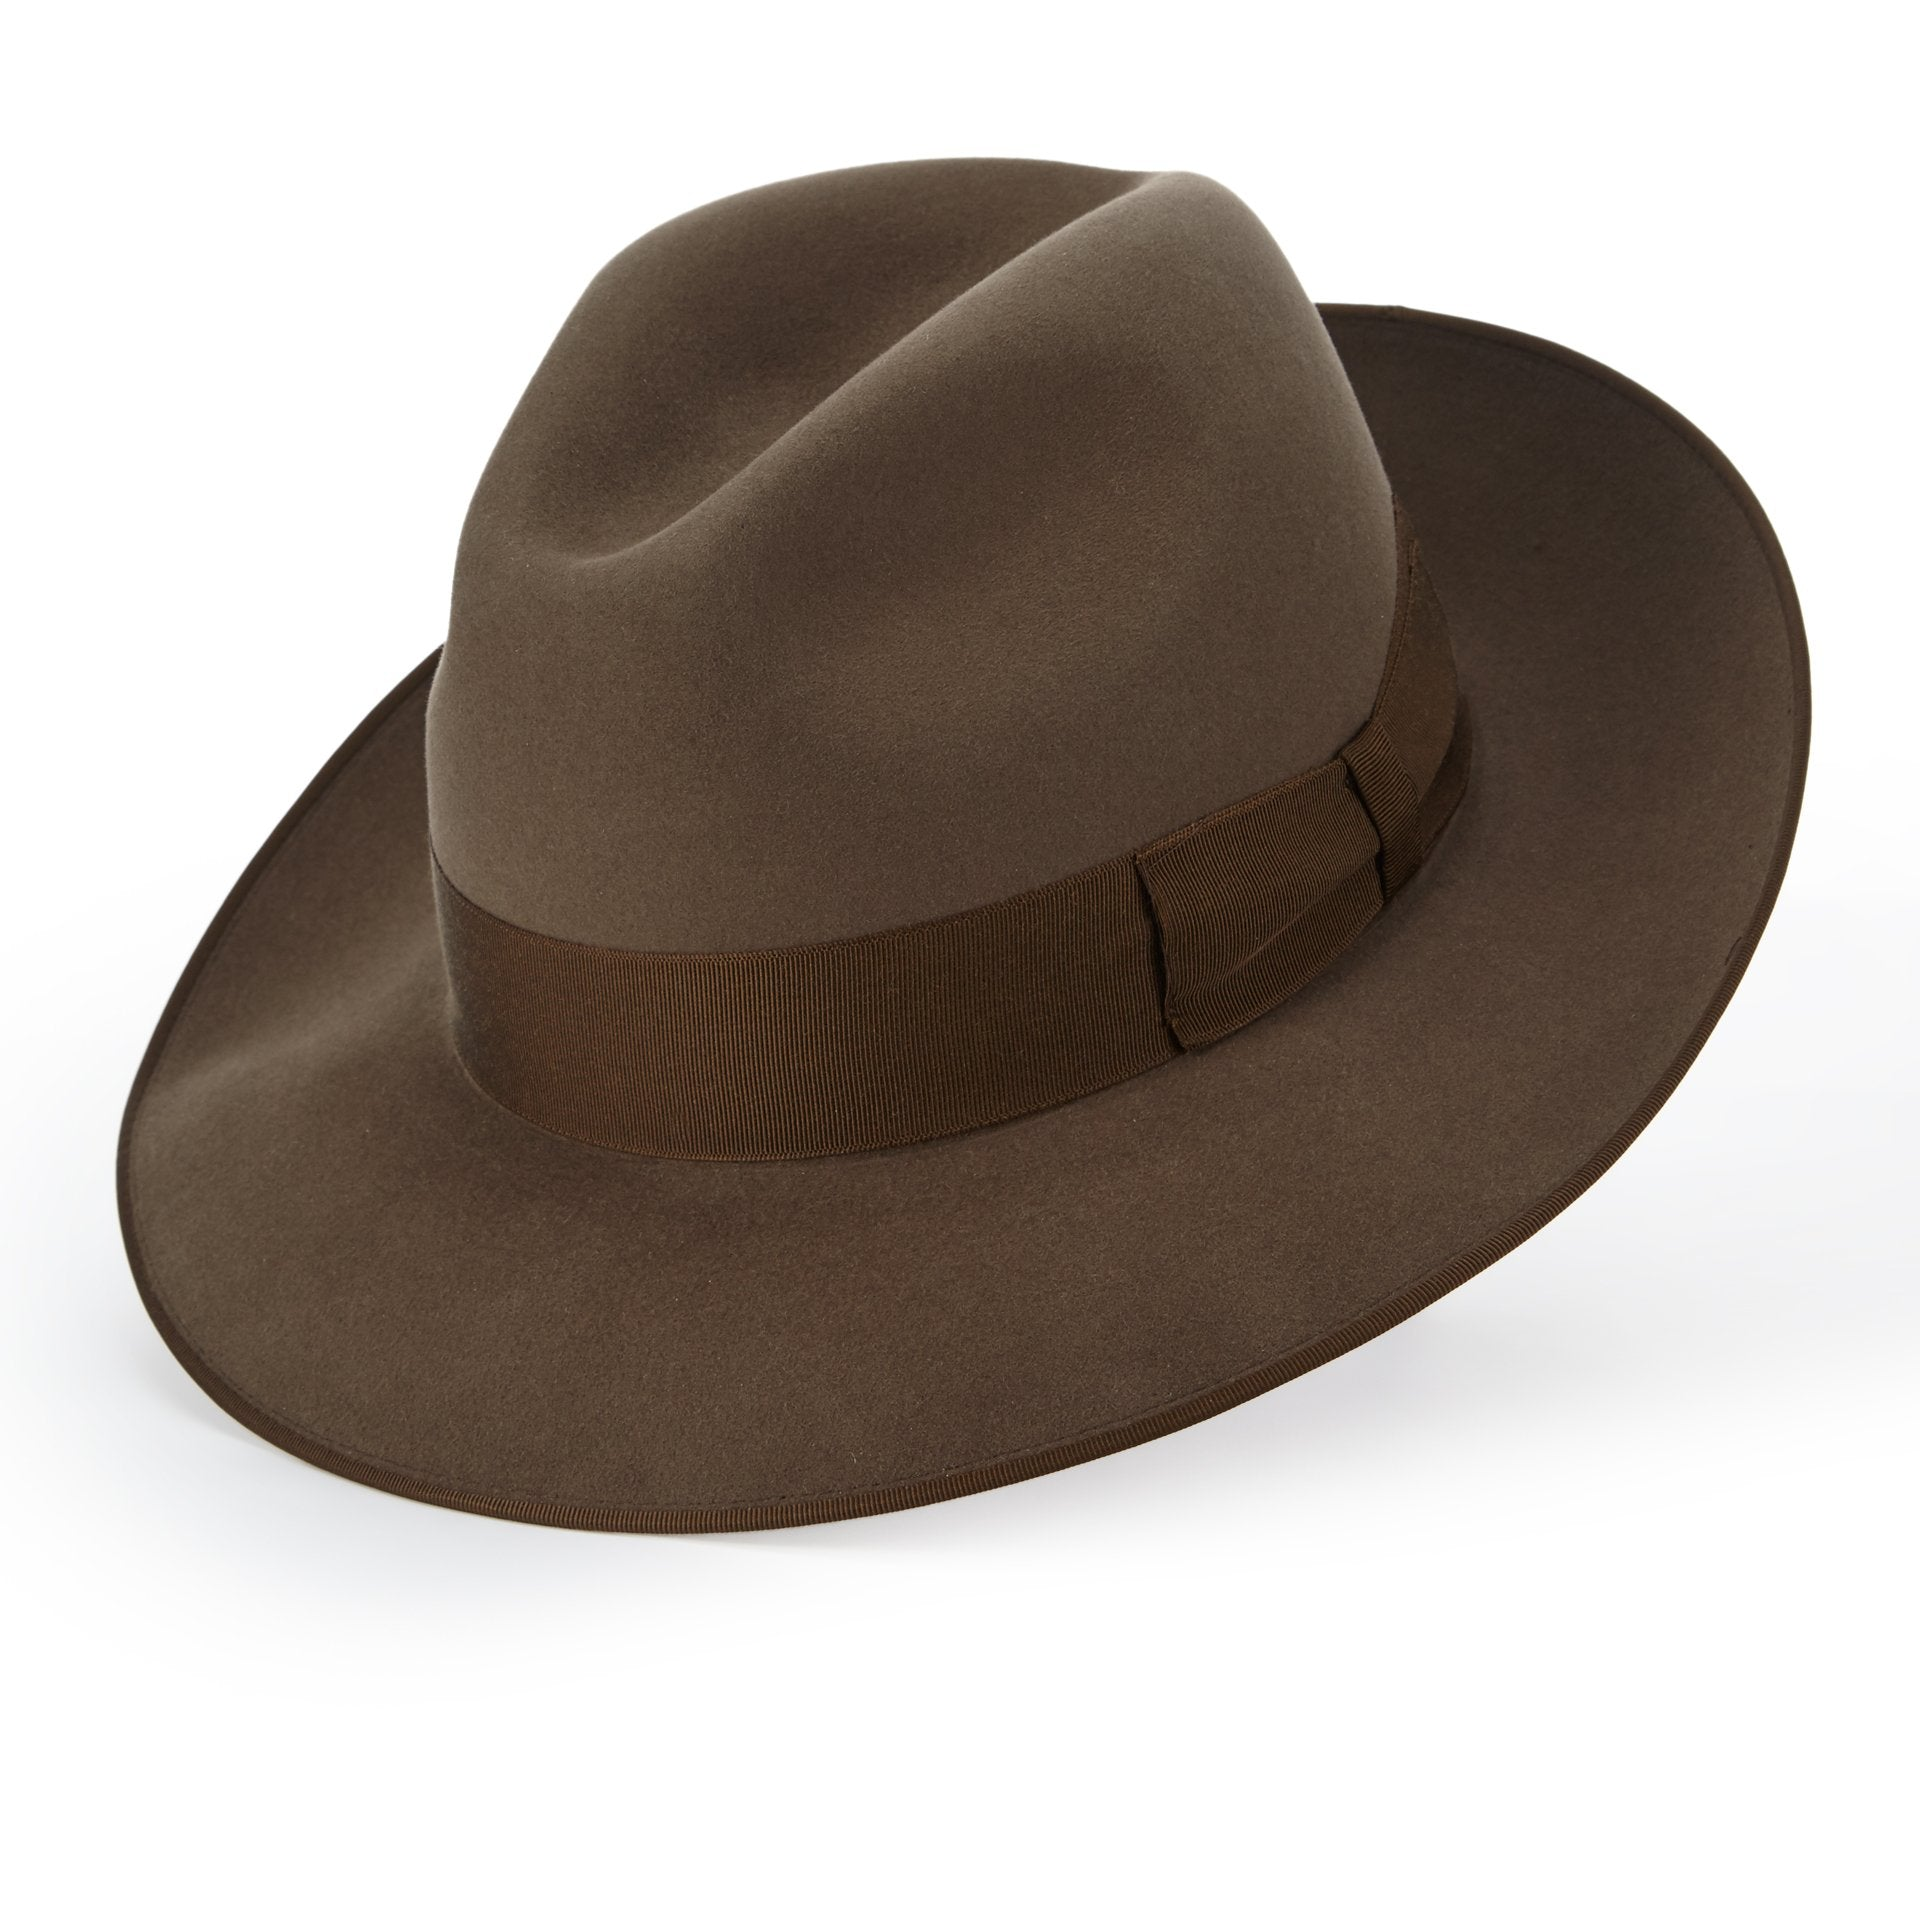 St James's fedora - Fedoras & homburgs - Lock & Co. Hatters London UK